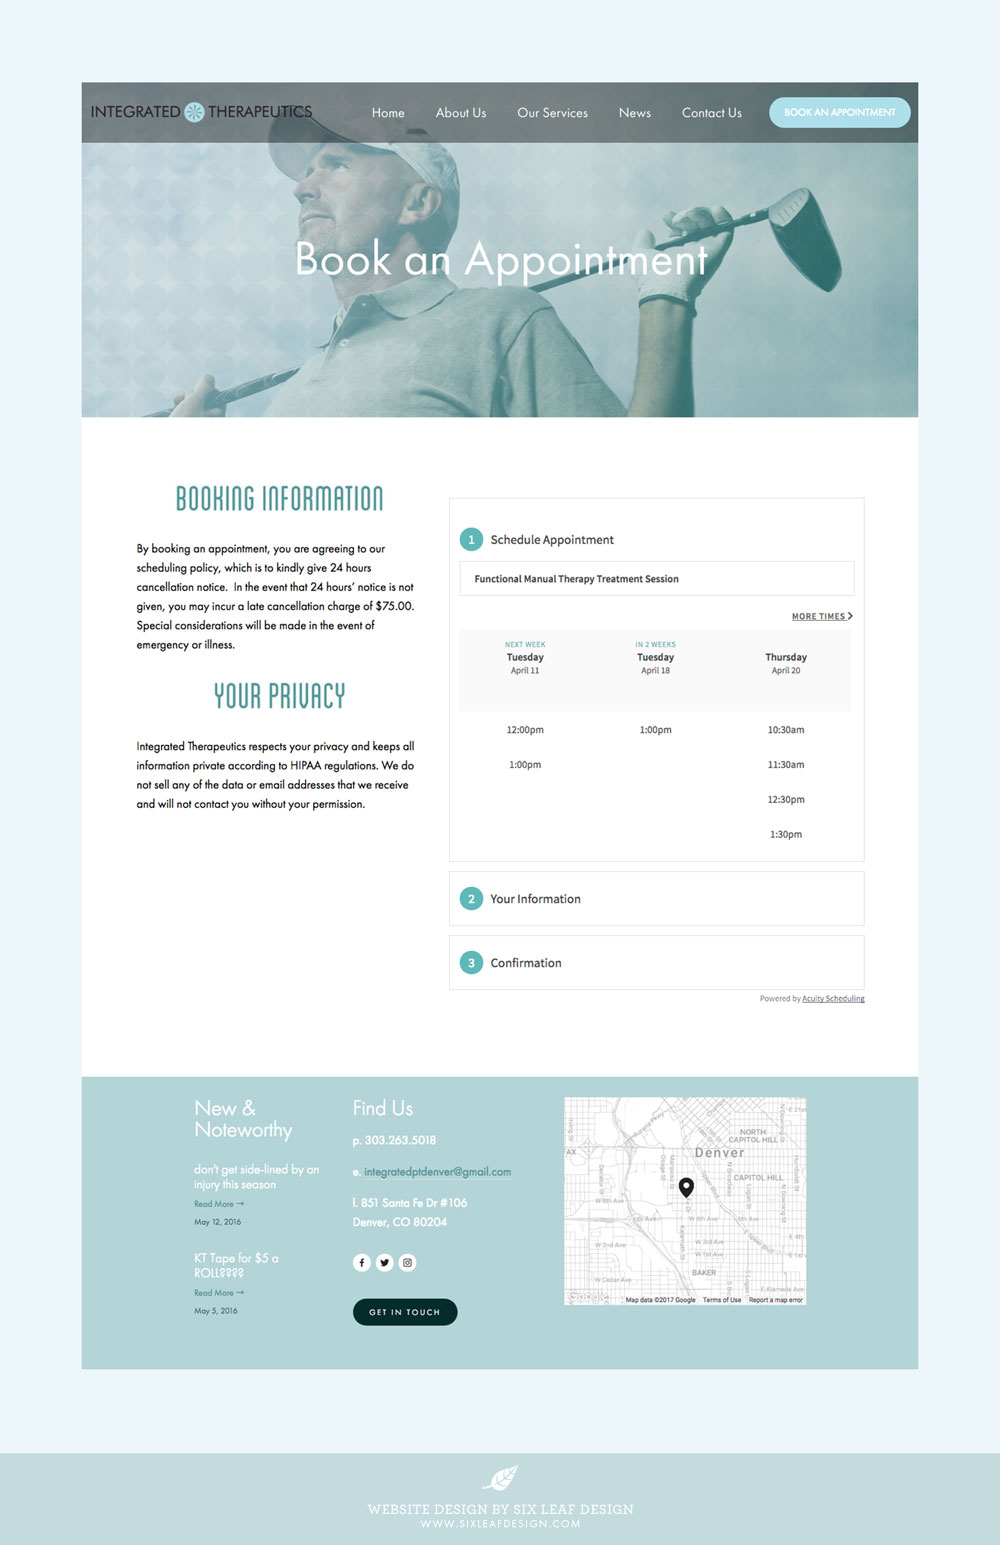 Website Design for Physical Therapy Business featuring Monochromatic Cool Color Palette and Active Photography